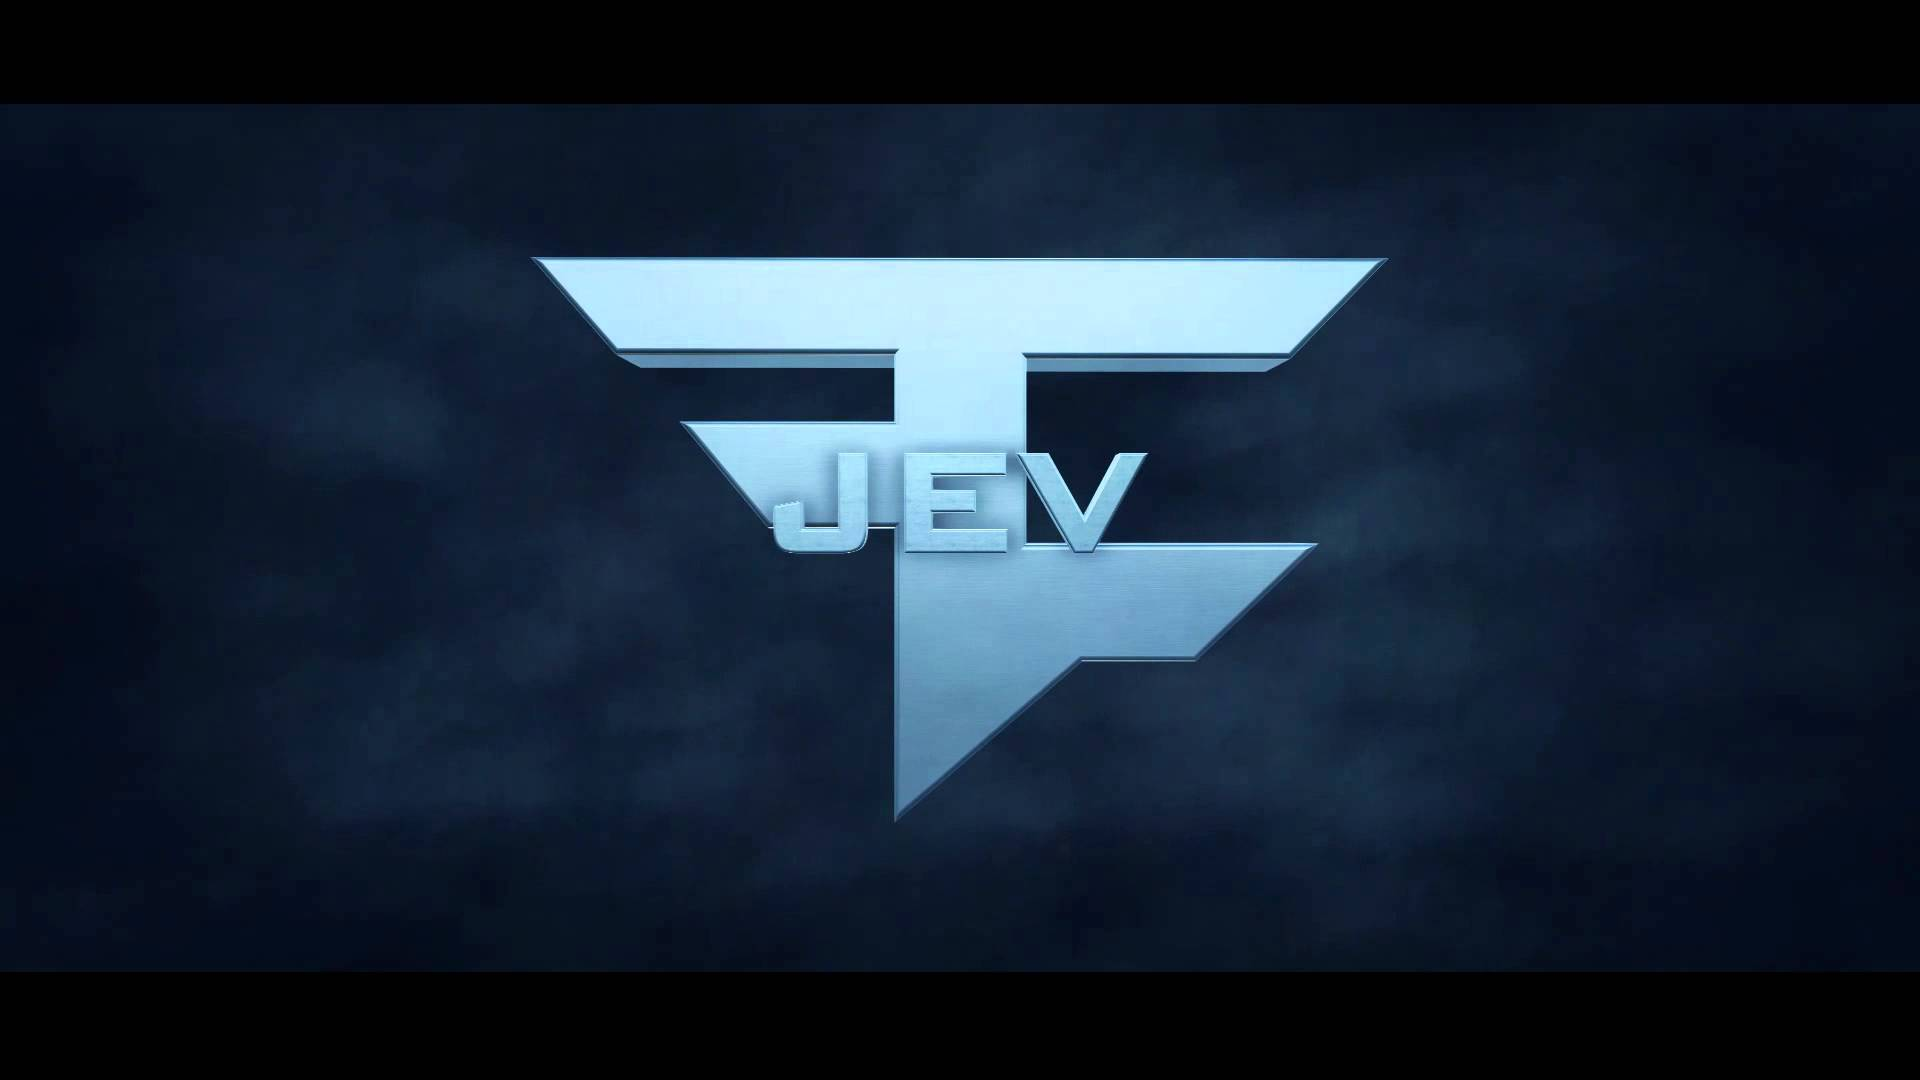 FaZe Jev Intro DuelMotions 1080p 1920x1080